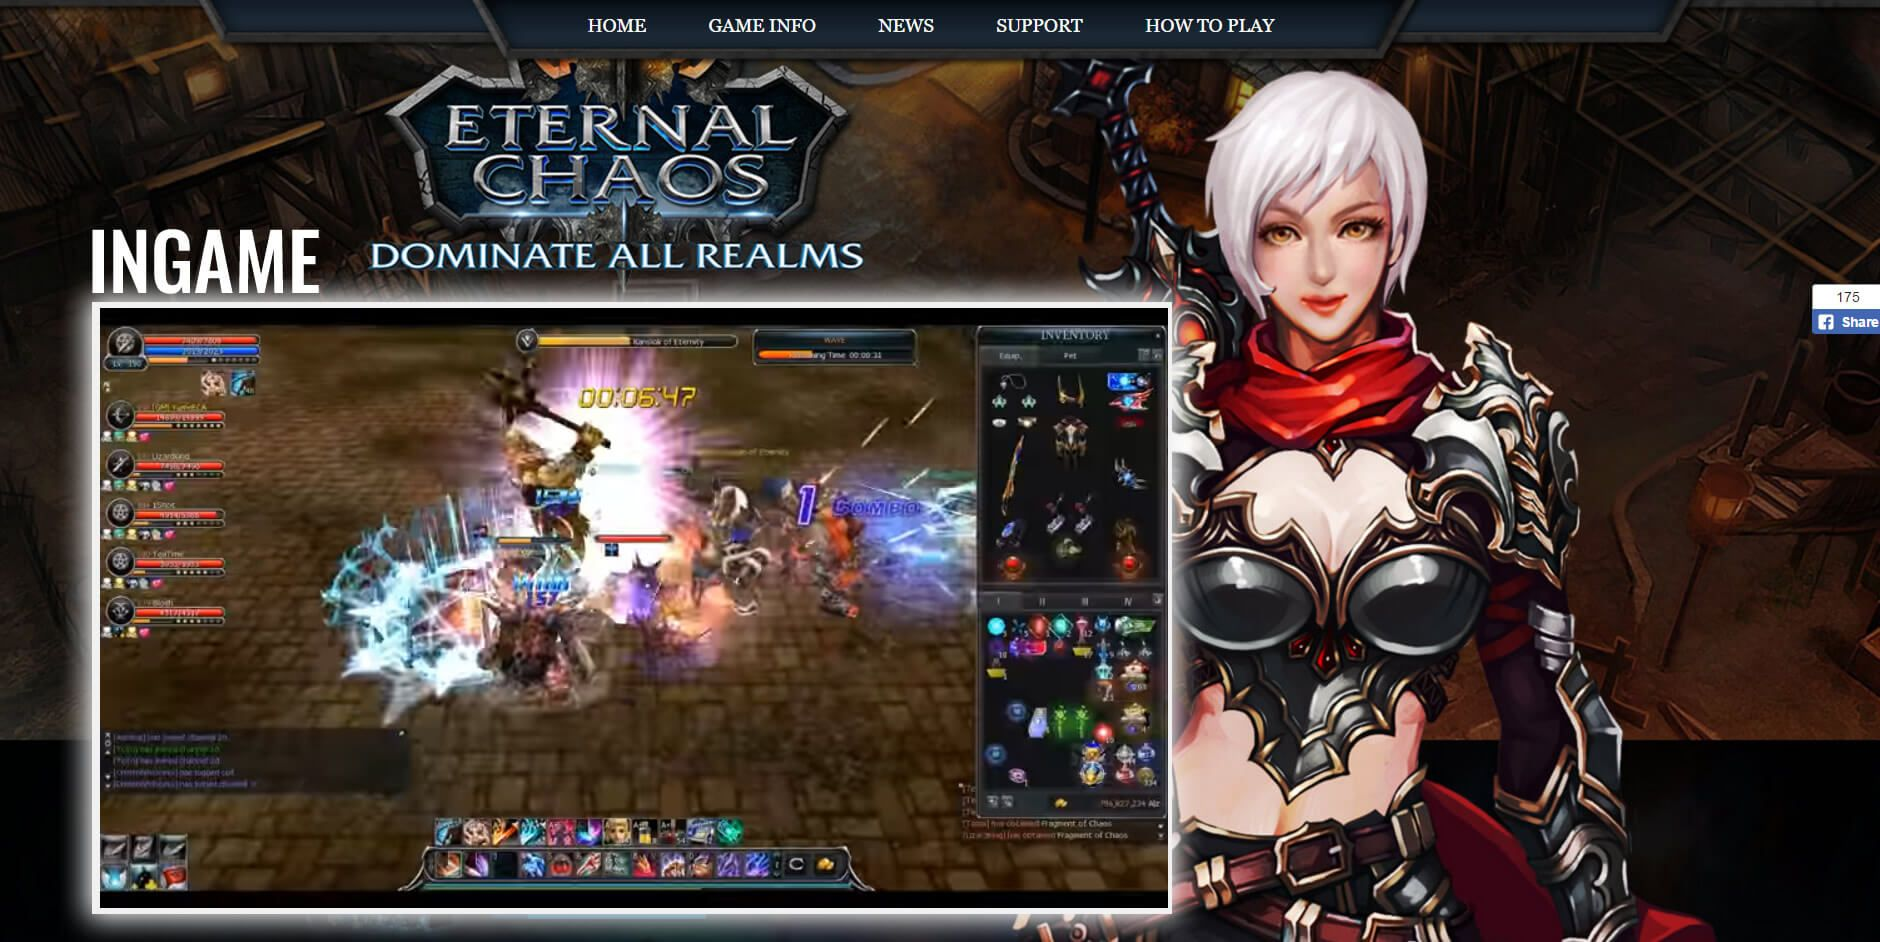 Eternal Chaos Online is a fighting based 3D MMORPG